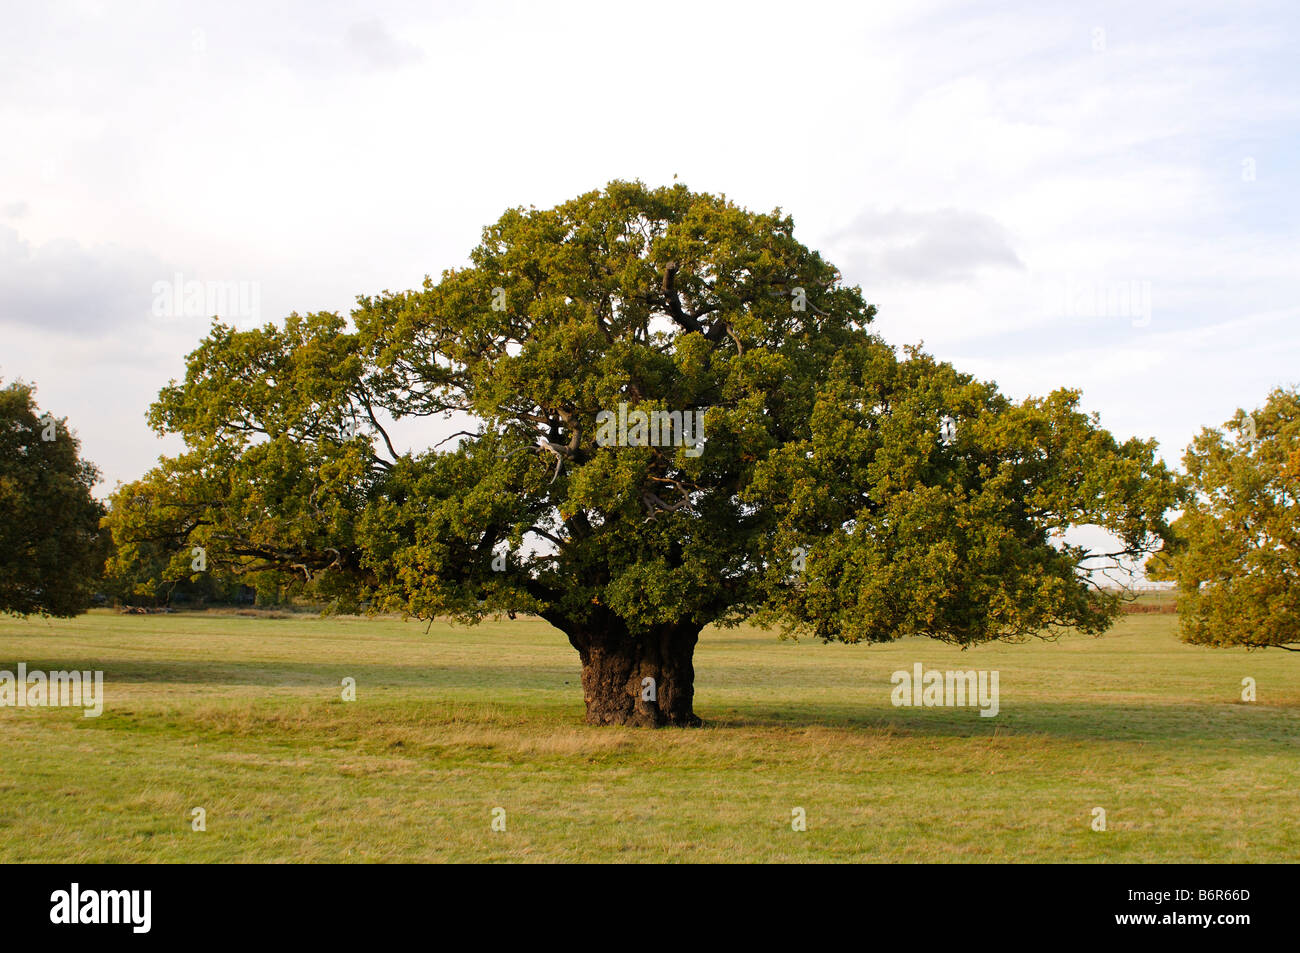 Oak tree Richmond Park Richmond upon Thames London REGNO UNITO Immagini Stock